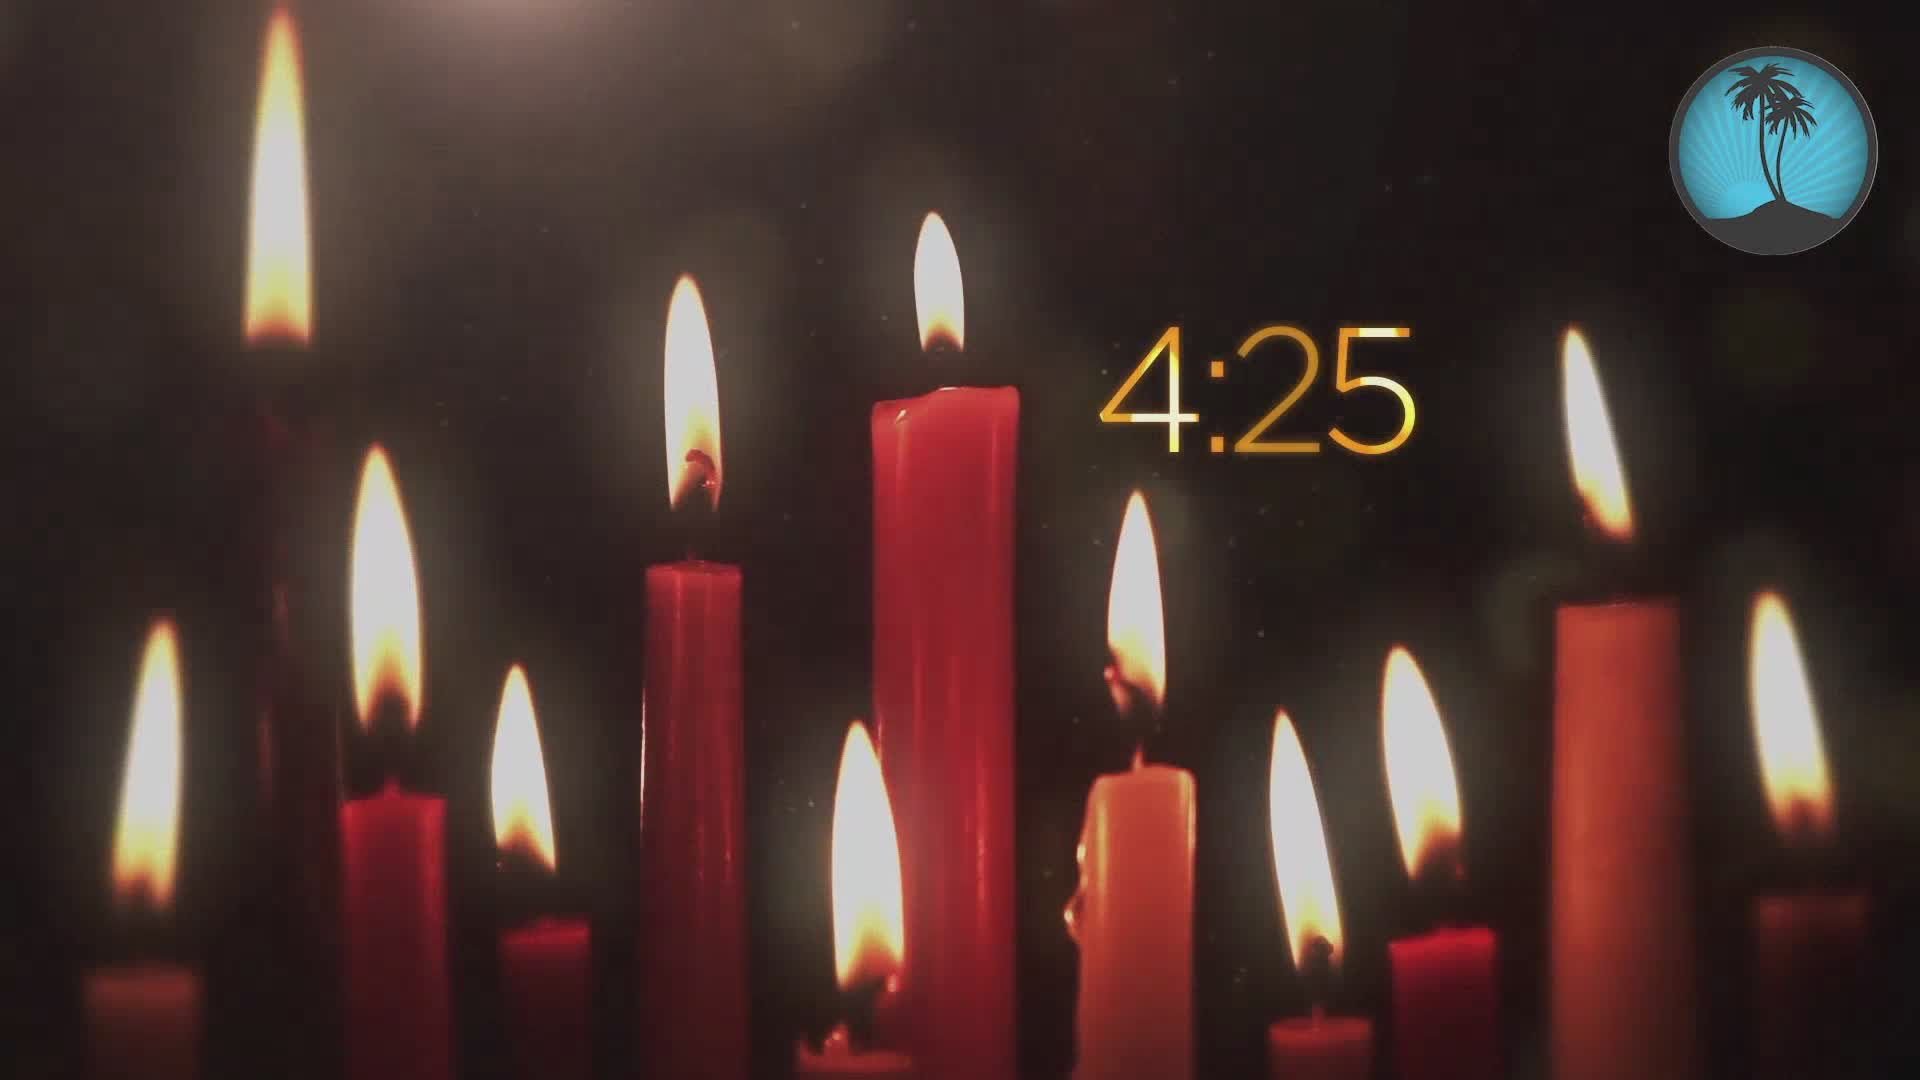 CandleLight 1st Service 12/24/2020 2:44:00 PM